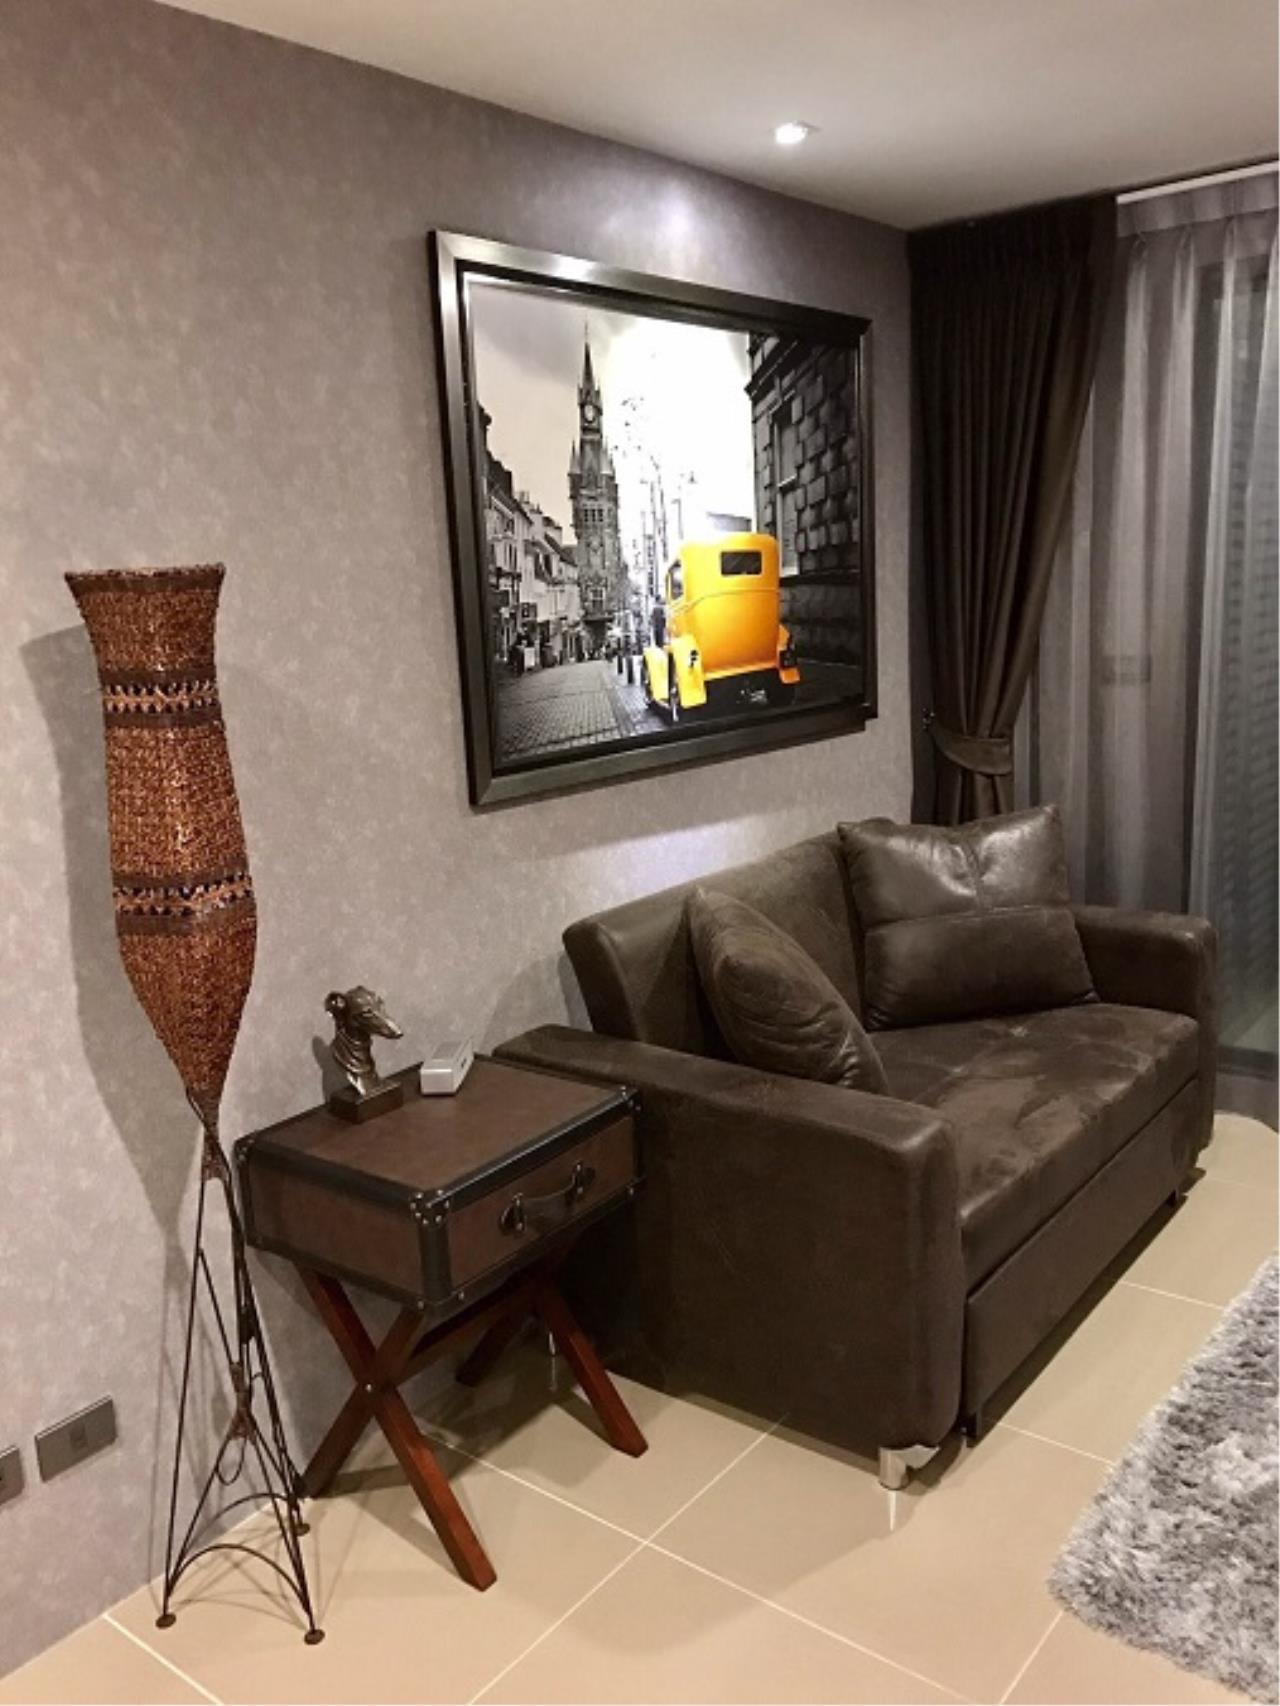 RE/MAX All Star Realty Agency's Mirage Sukhumvit one bed condo for sale/rent (BTS Asoke / MRT Sukhumvit) 6